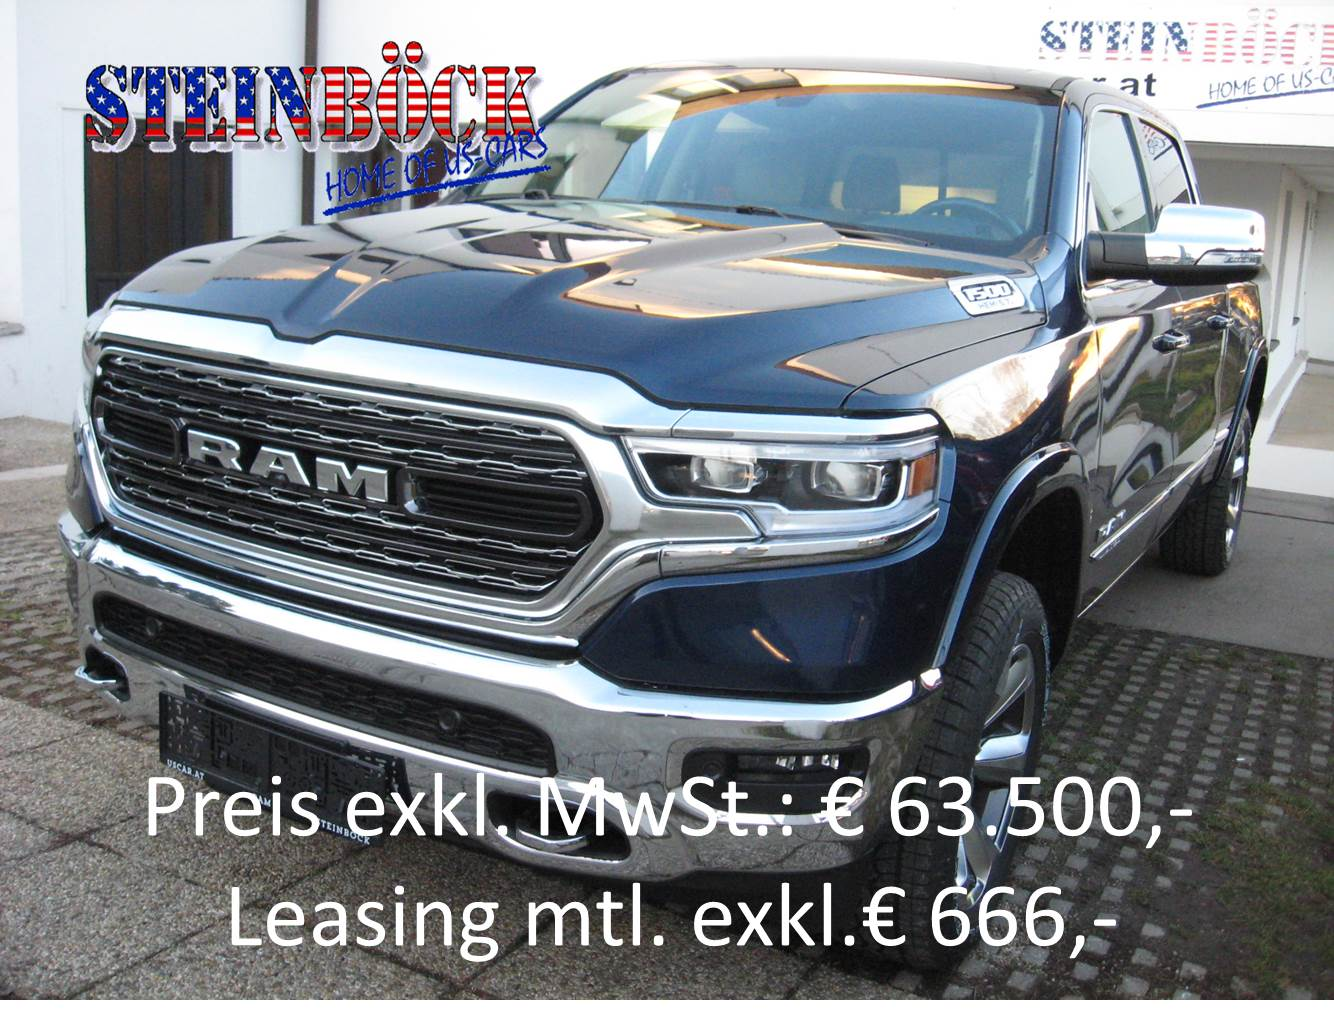 Dodge RAM 1500 Crew Cab Longbed Limited € 63.500,- NETTO - � 76200